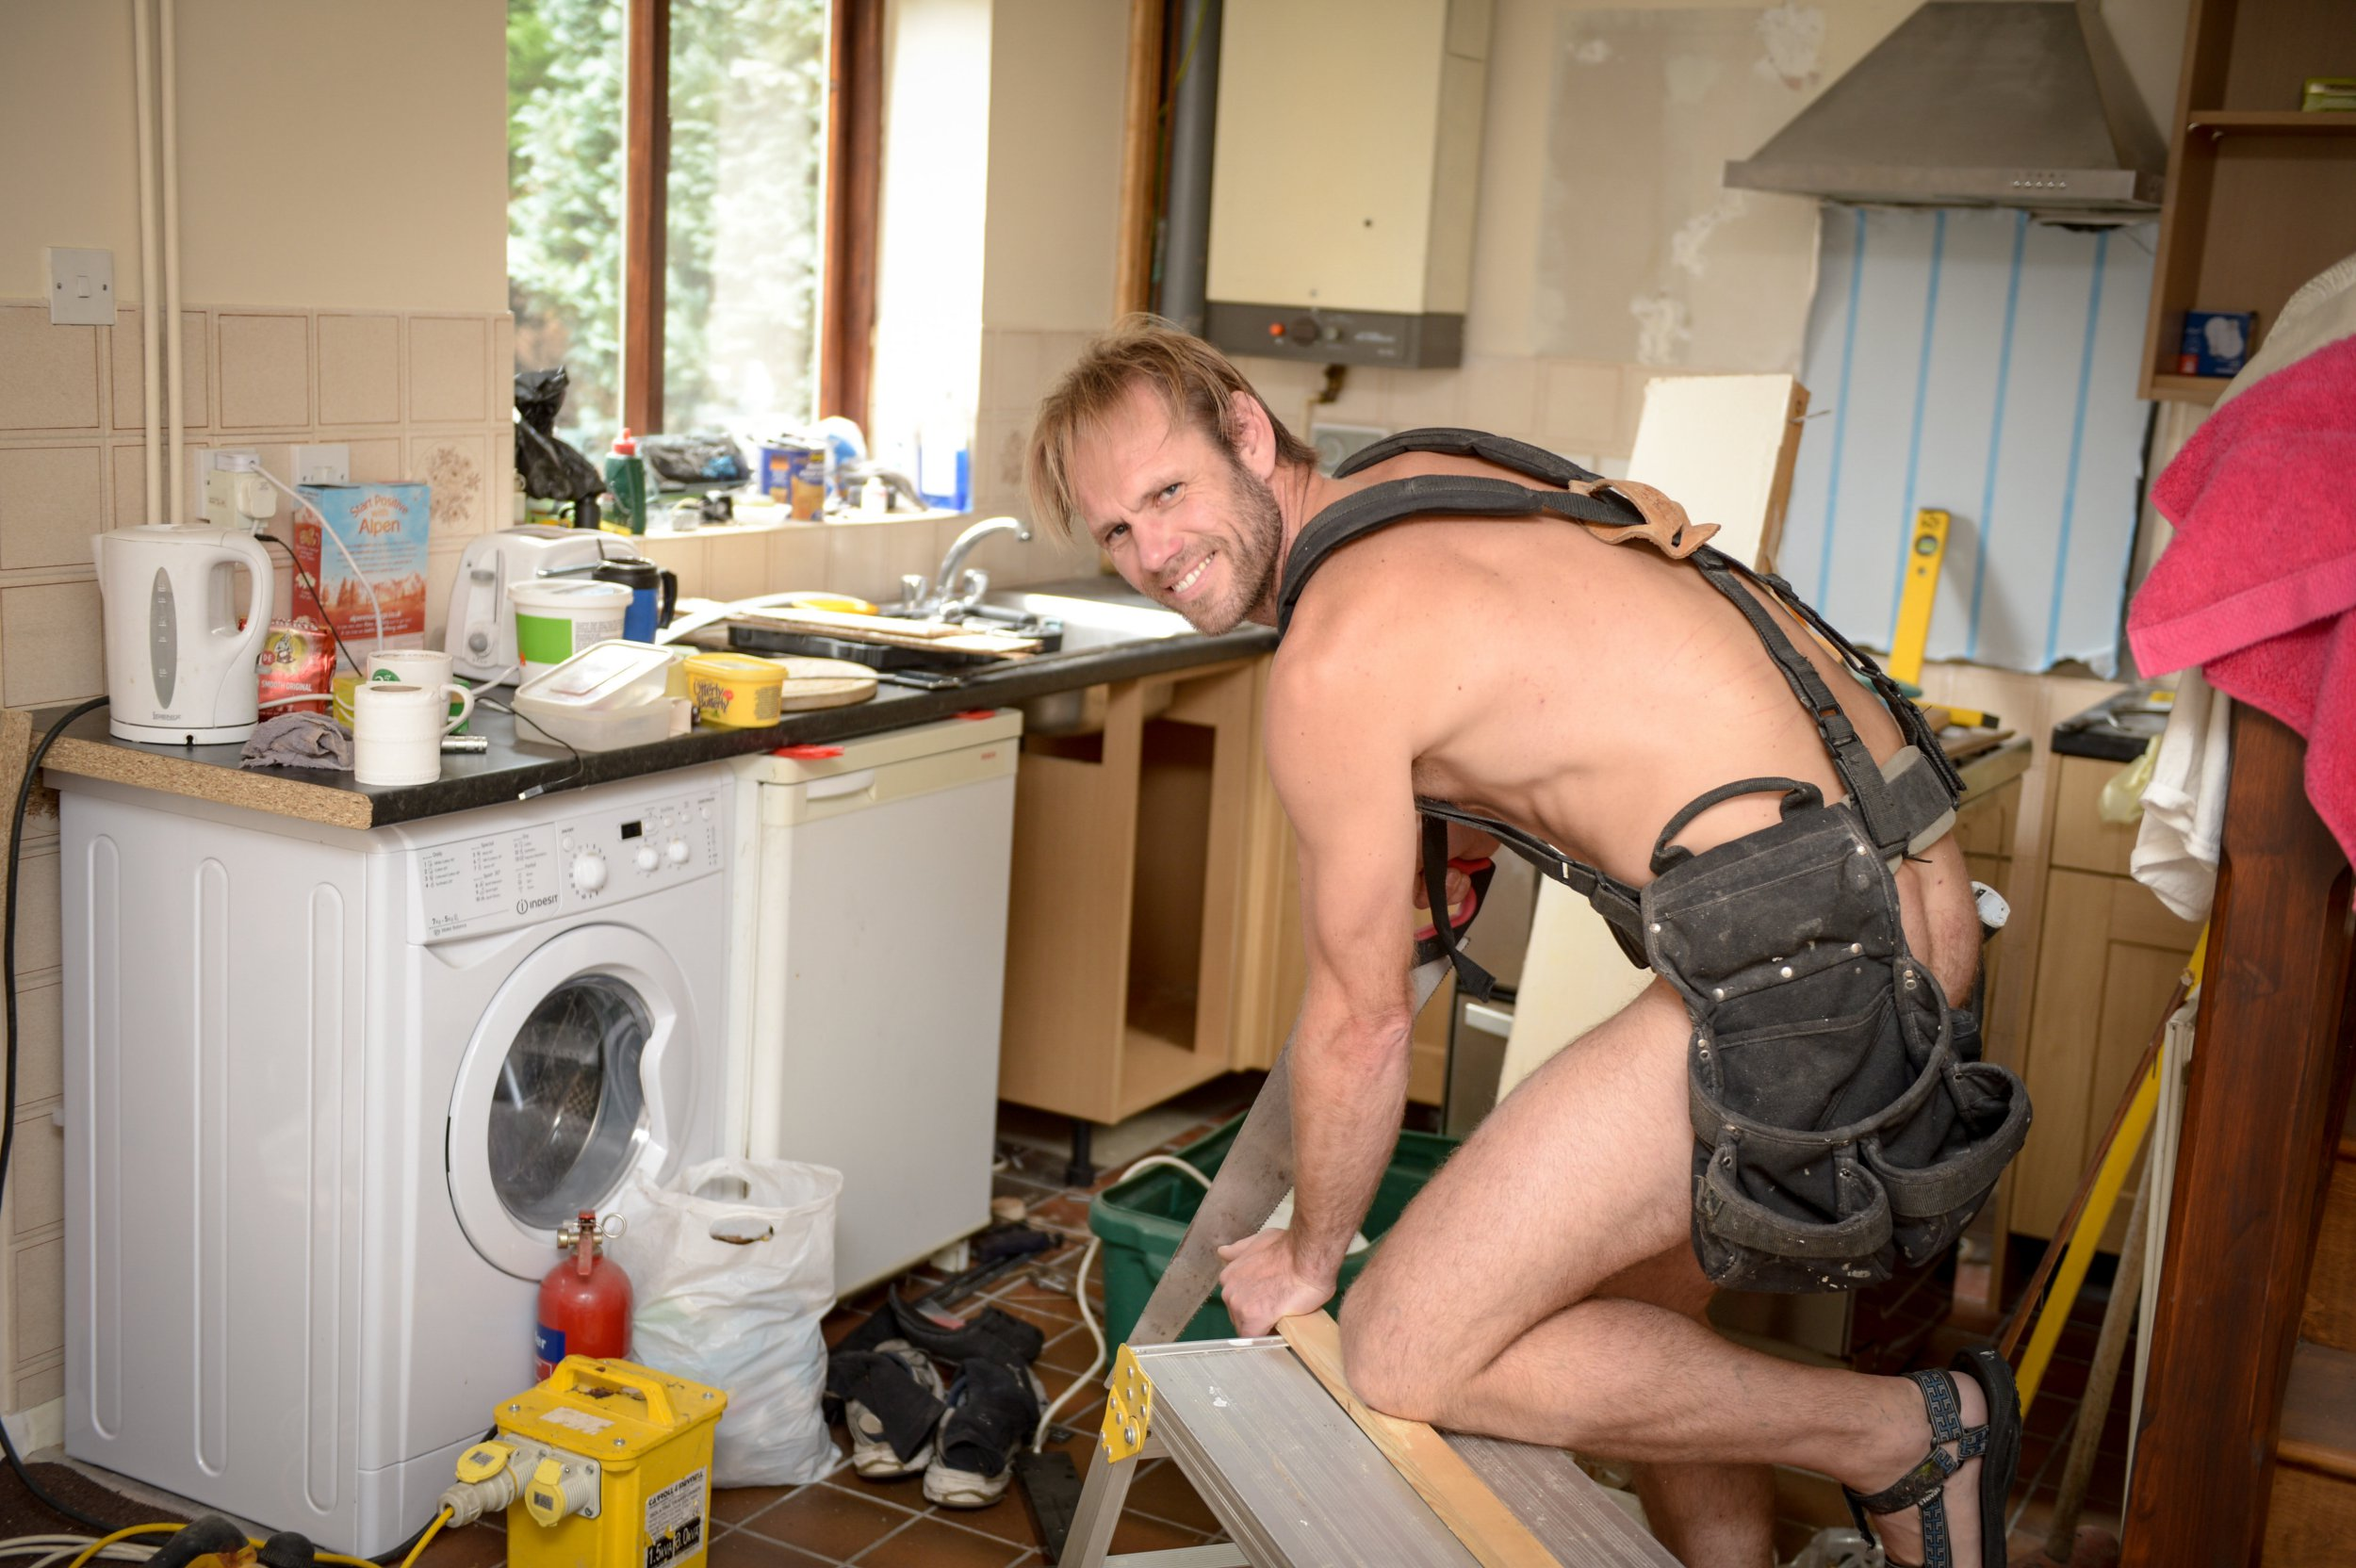 FILE PIC - Naturist Rob Jenner renovating his residence See National News story NNnaked.A naturist, dubbed a 'Naked Carpenter' for doing adult his residence in a buff, unprotected himself while operative as a smoothness motorist - and walked by a selling centre in transparent trousers.Robert Jenner, an ex-soldier and contentious naturist, insisted his adventurous actions have never left anyone dumbfounded or repelled - notwithstanding walking past a stadium with his strength in transparent view.But a 43-year-old was convicted of 10 depends of faulty bearing during Canterbury Crown Court.But a justice motionless he should be punished for 'going commando' and was found guilty of 10 offences, after an 11th assign was dropped.